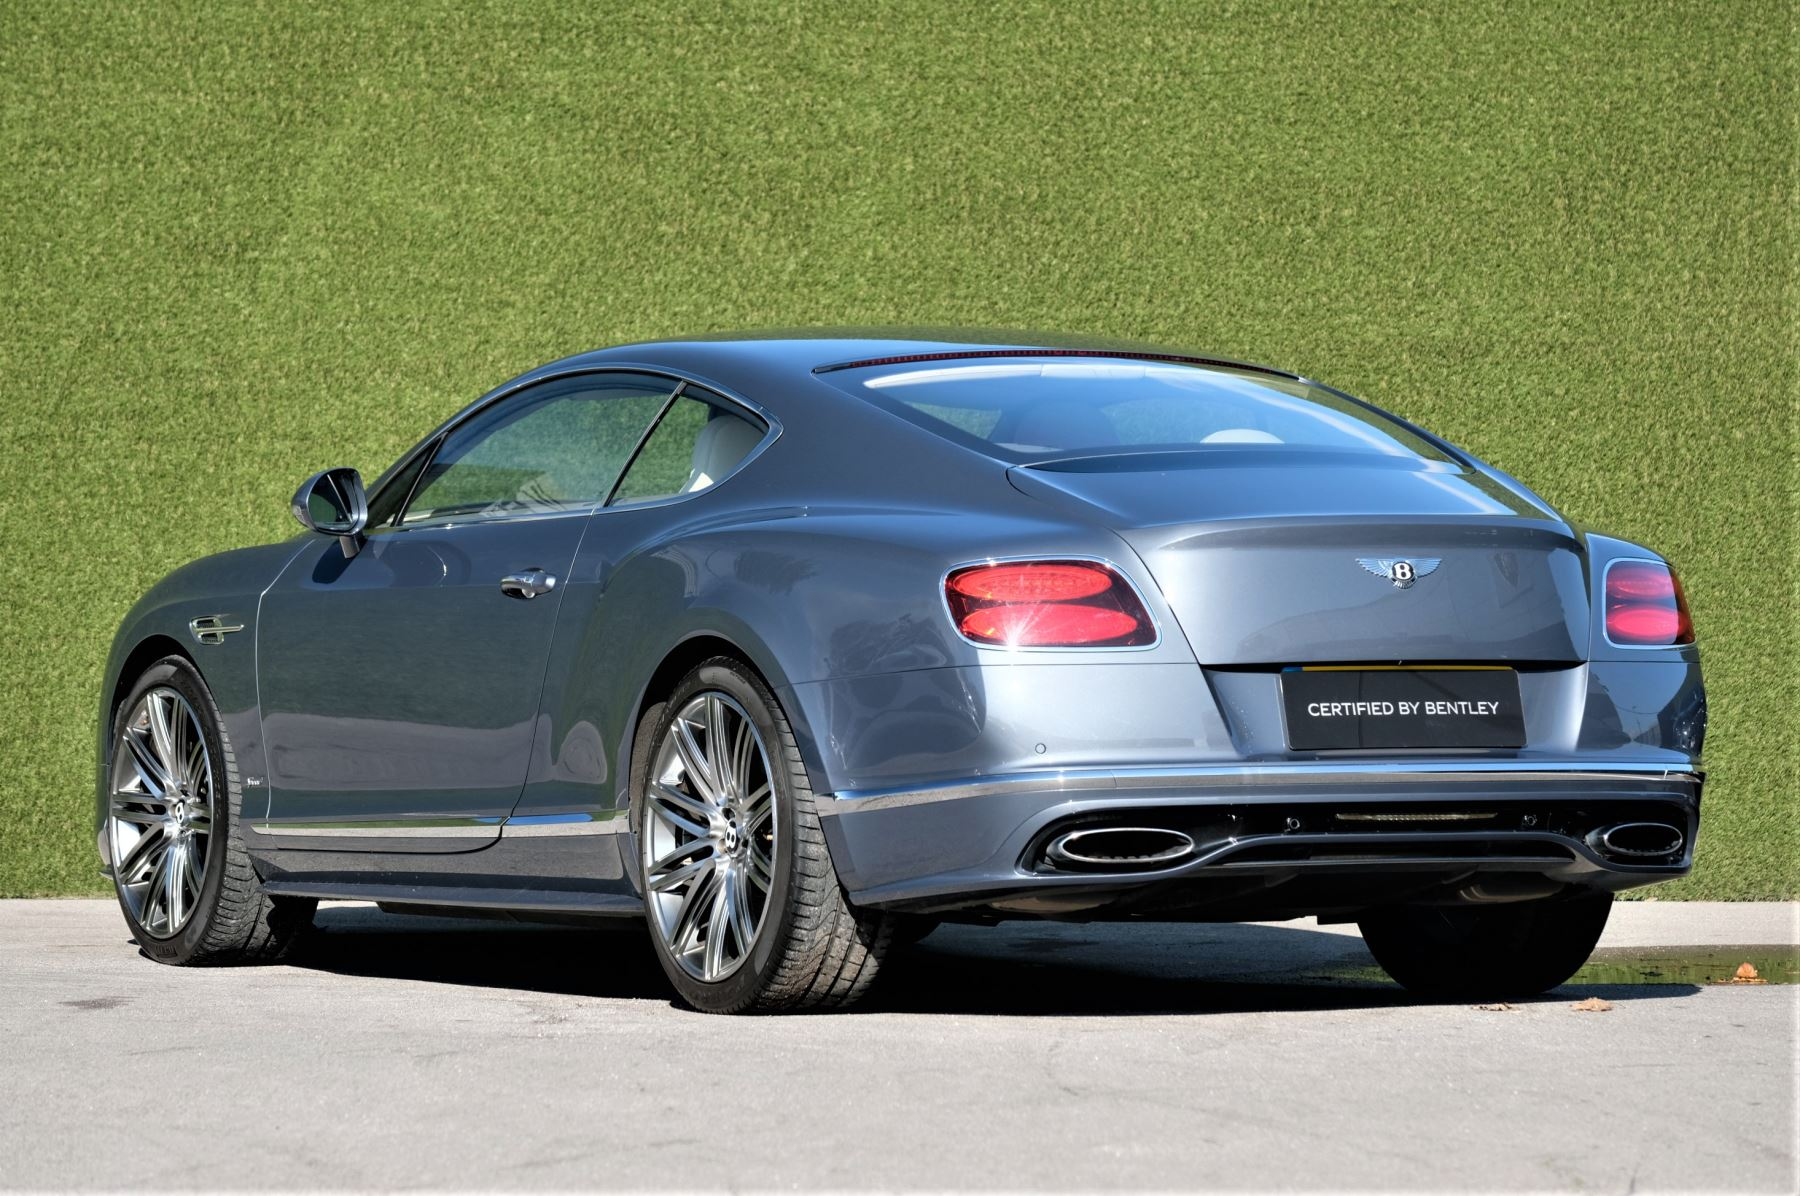 Bentley Continental GT 6.0 W12 [635] Speed 2dr image 5